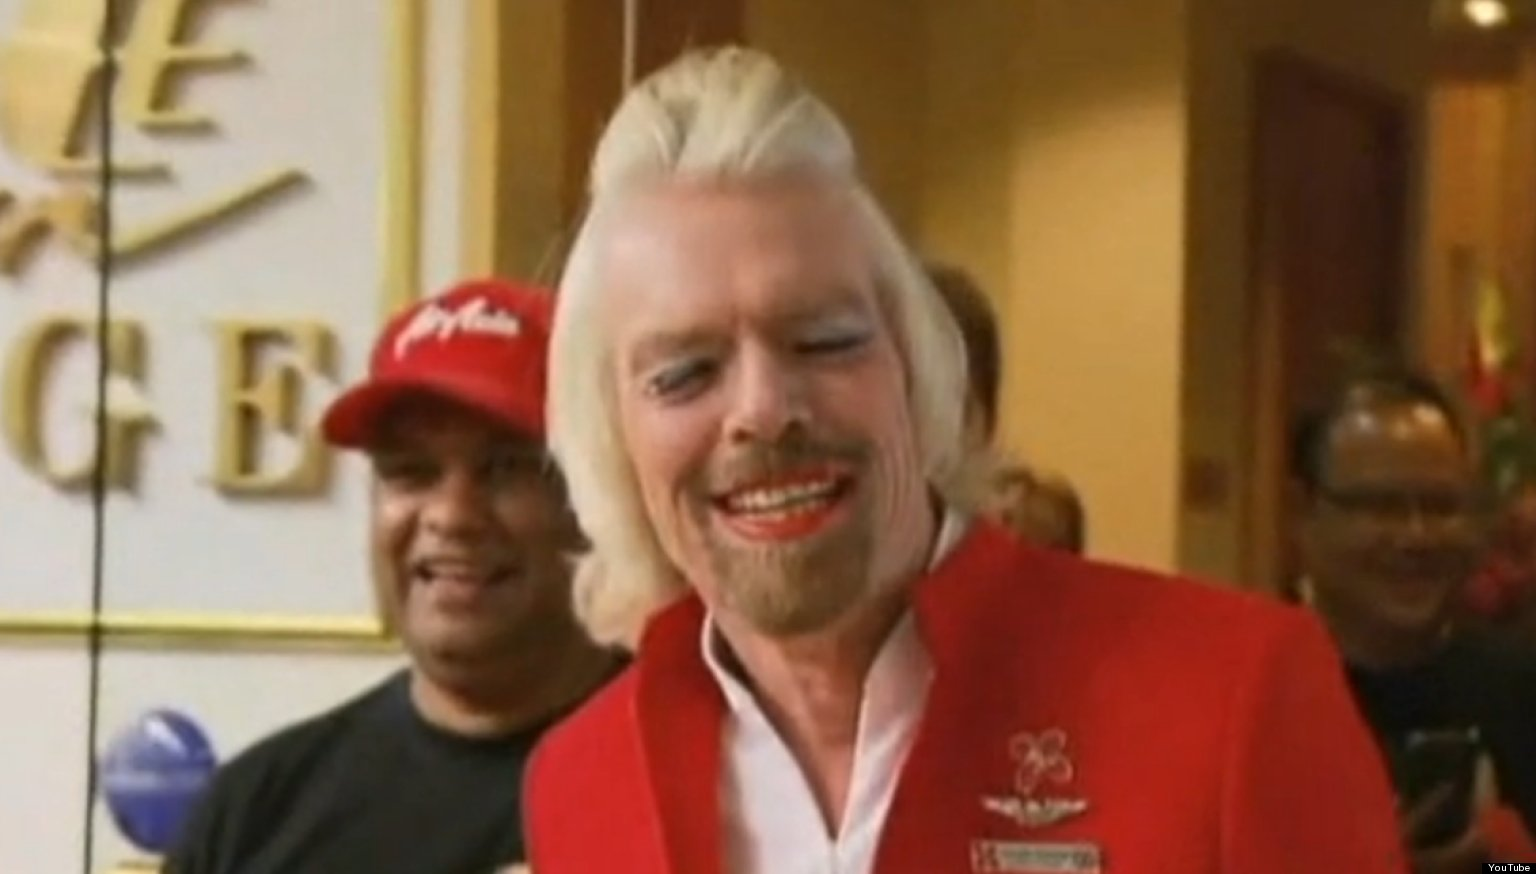 Sir Richard Branson In Drag As He Loses Bet And Dresses As